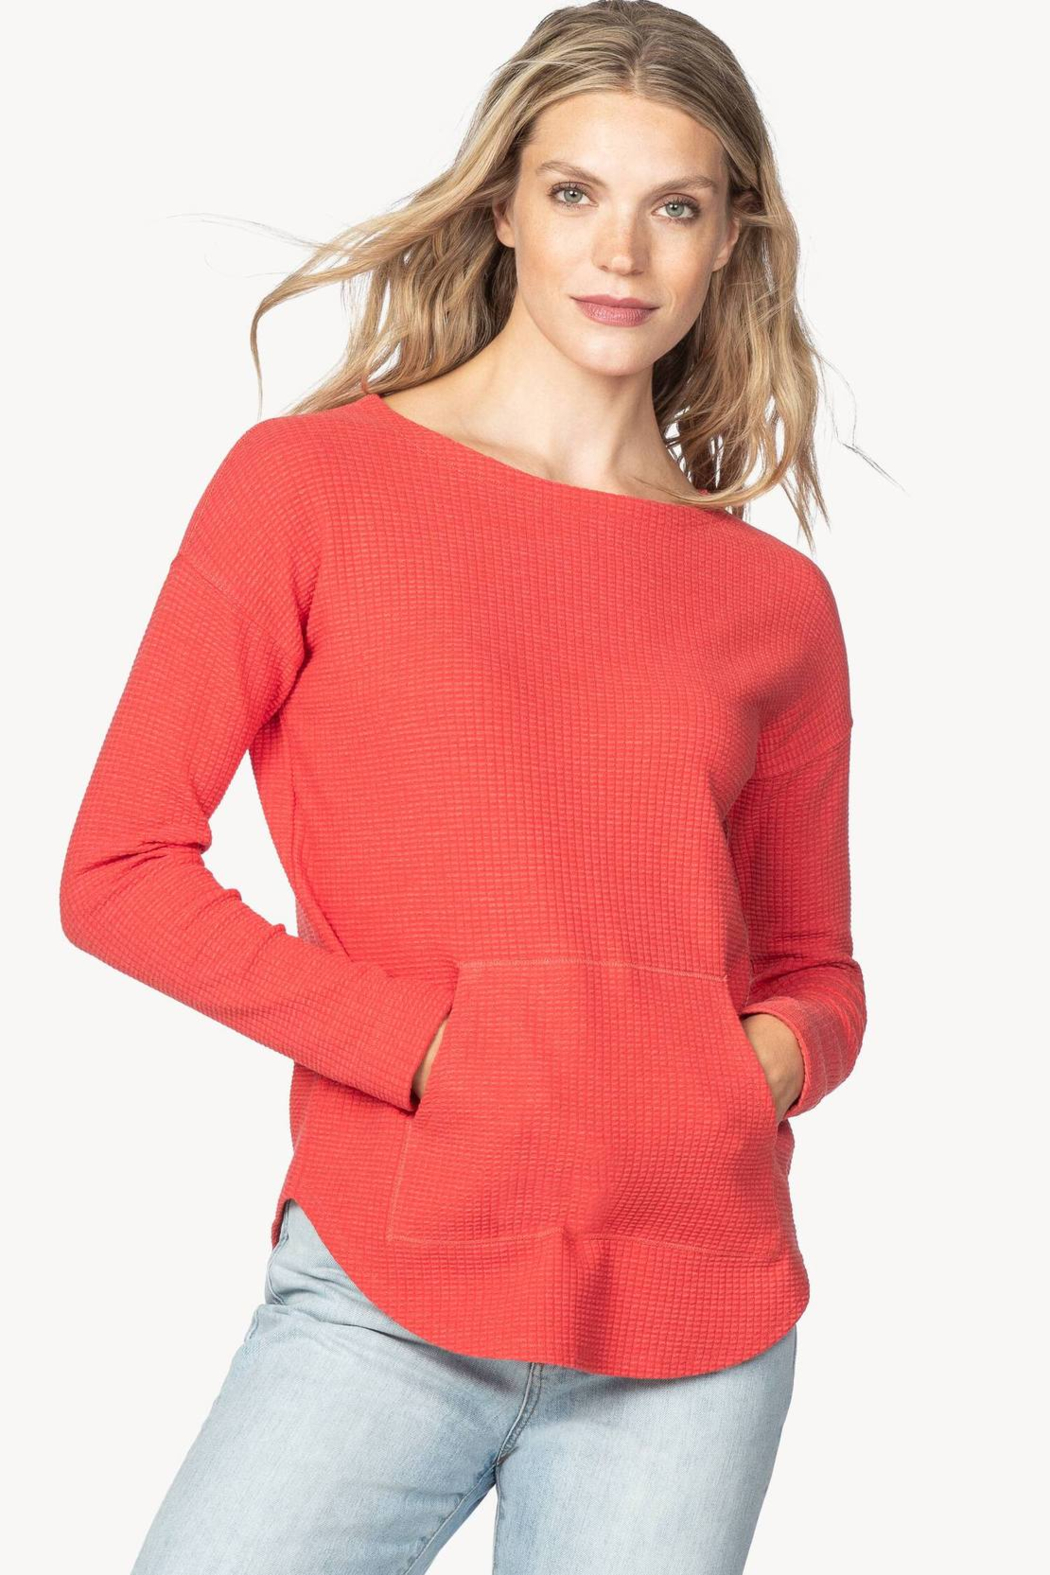 Lilla P PA1092 - Long Sleeved Boatneck - Front Cropped Image